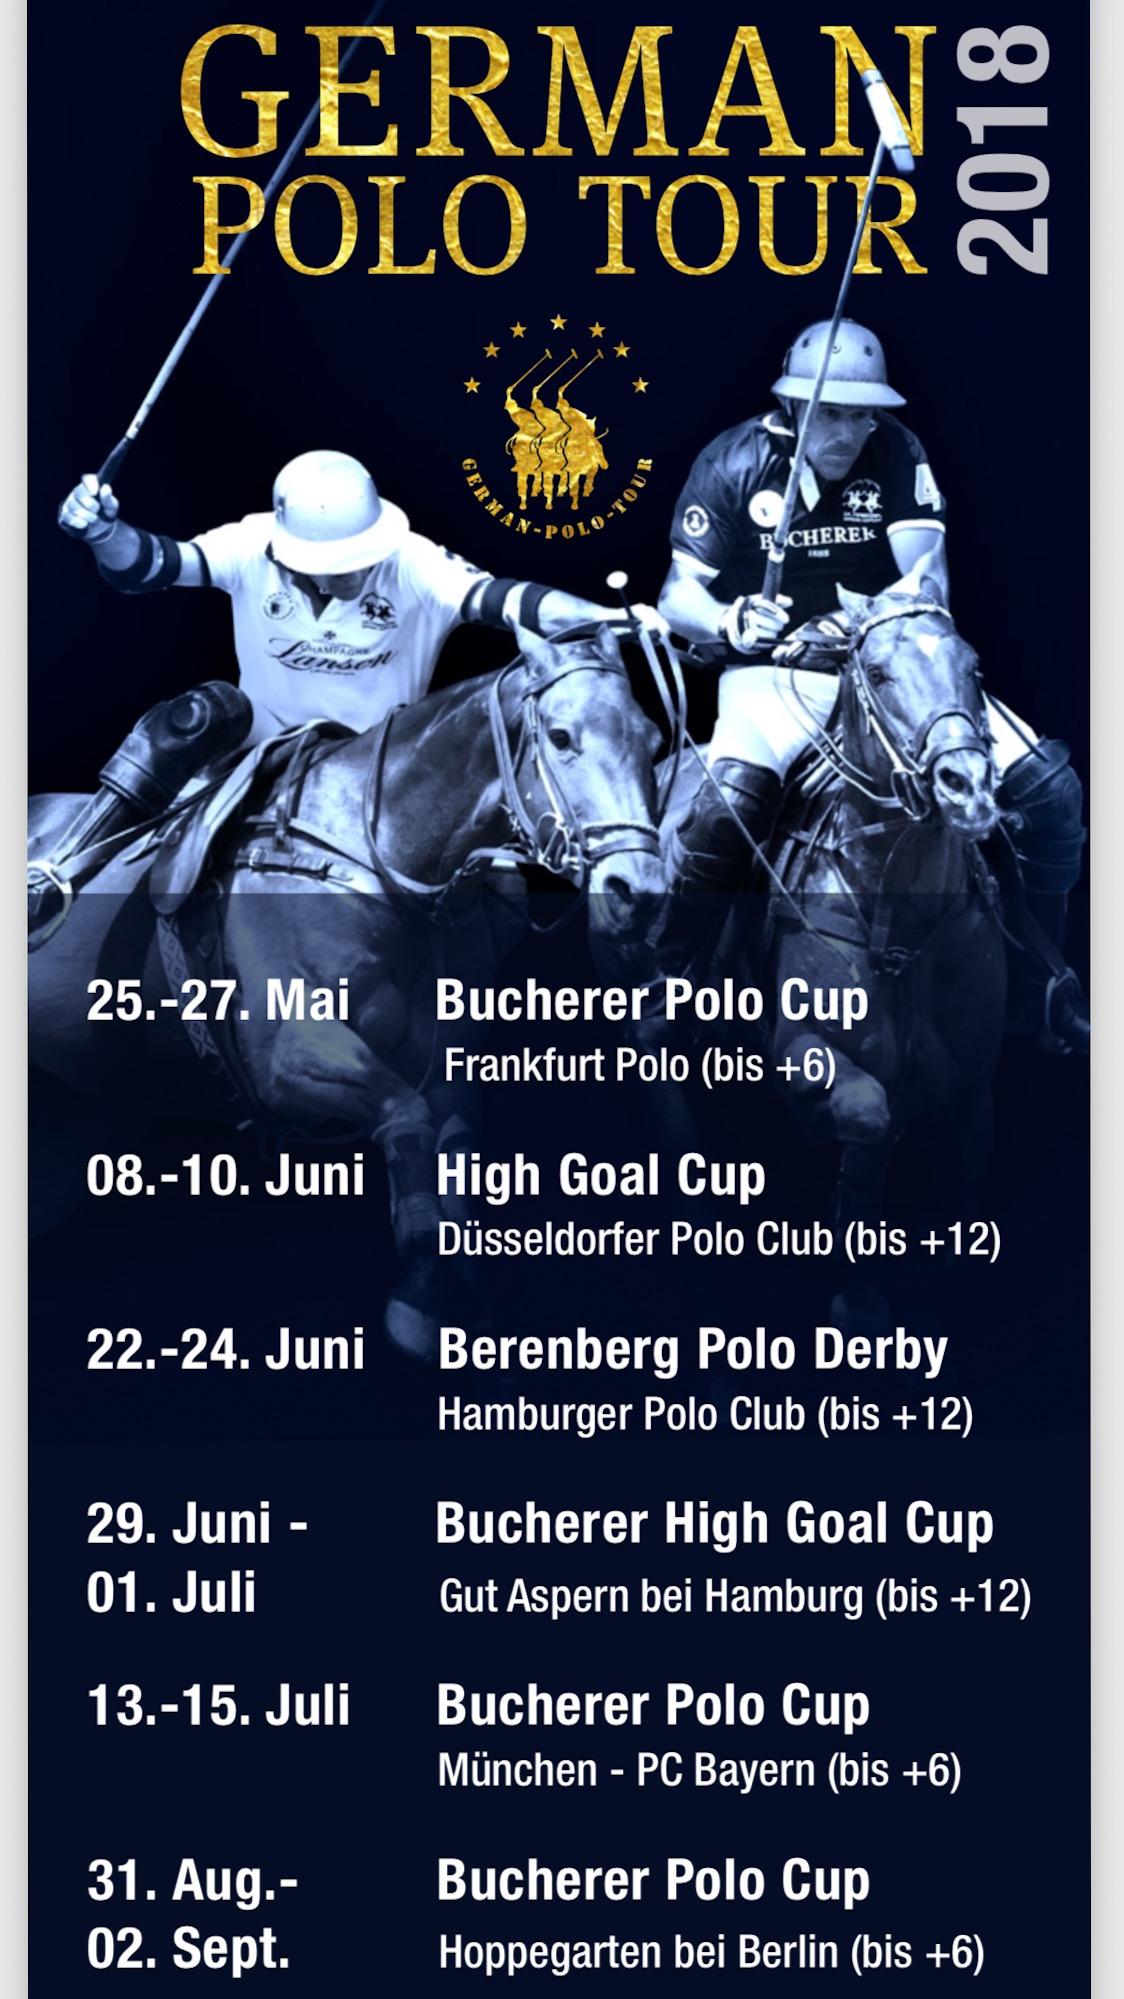 GERMAN POLO TOUR 2018 - TERMINE